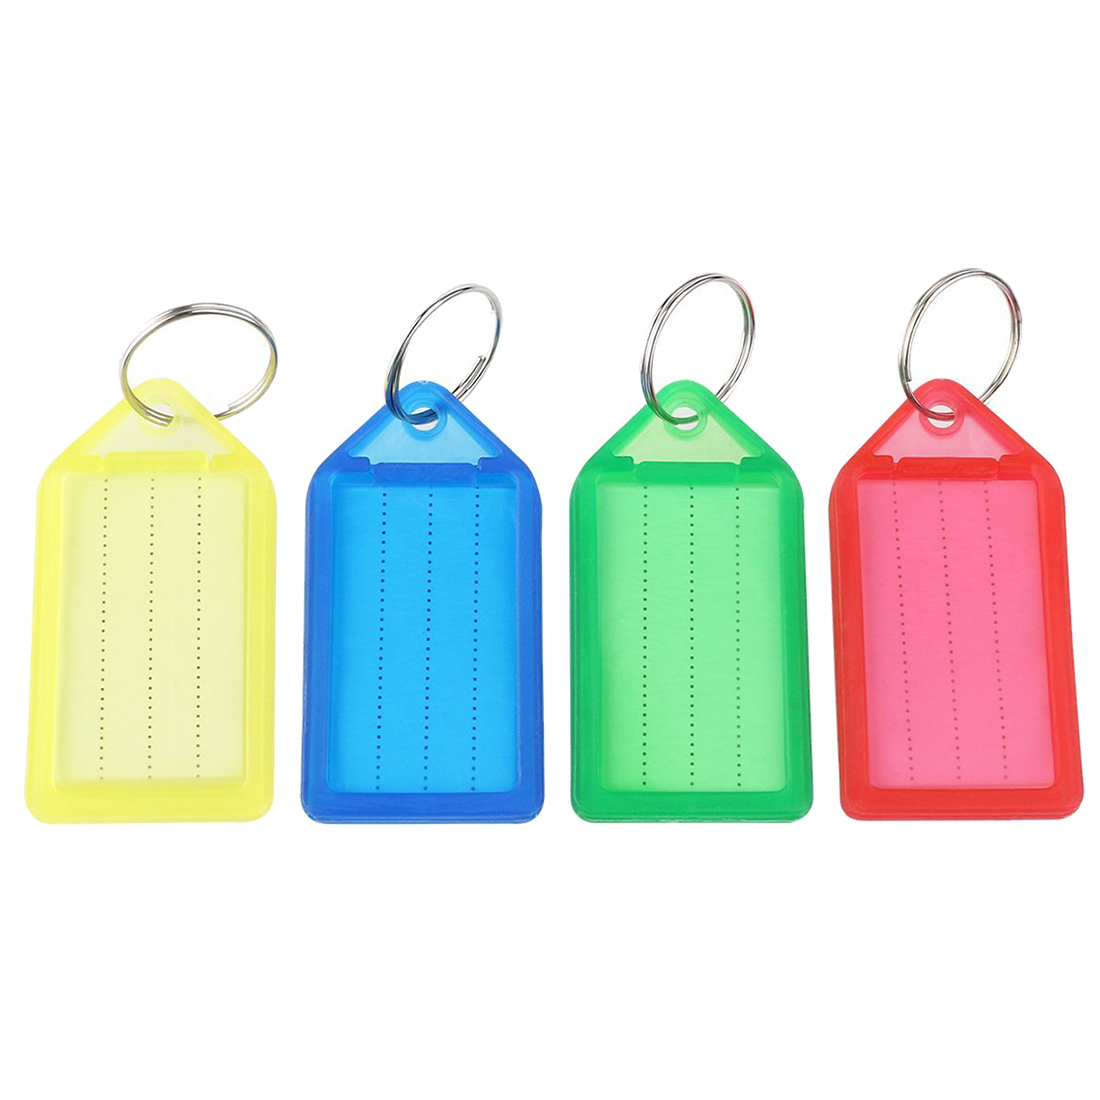 60pcs Plastic Slideable Key Fobs Luggage Tags With Key